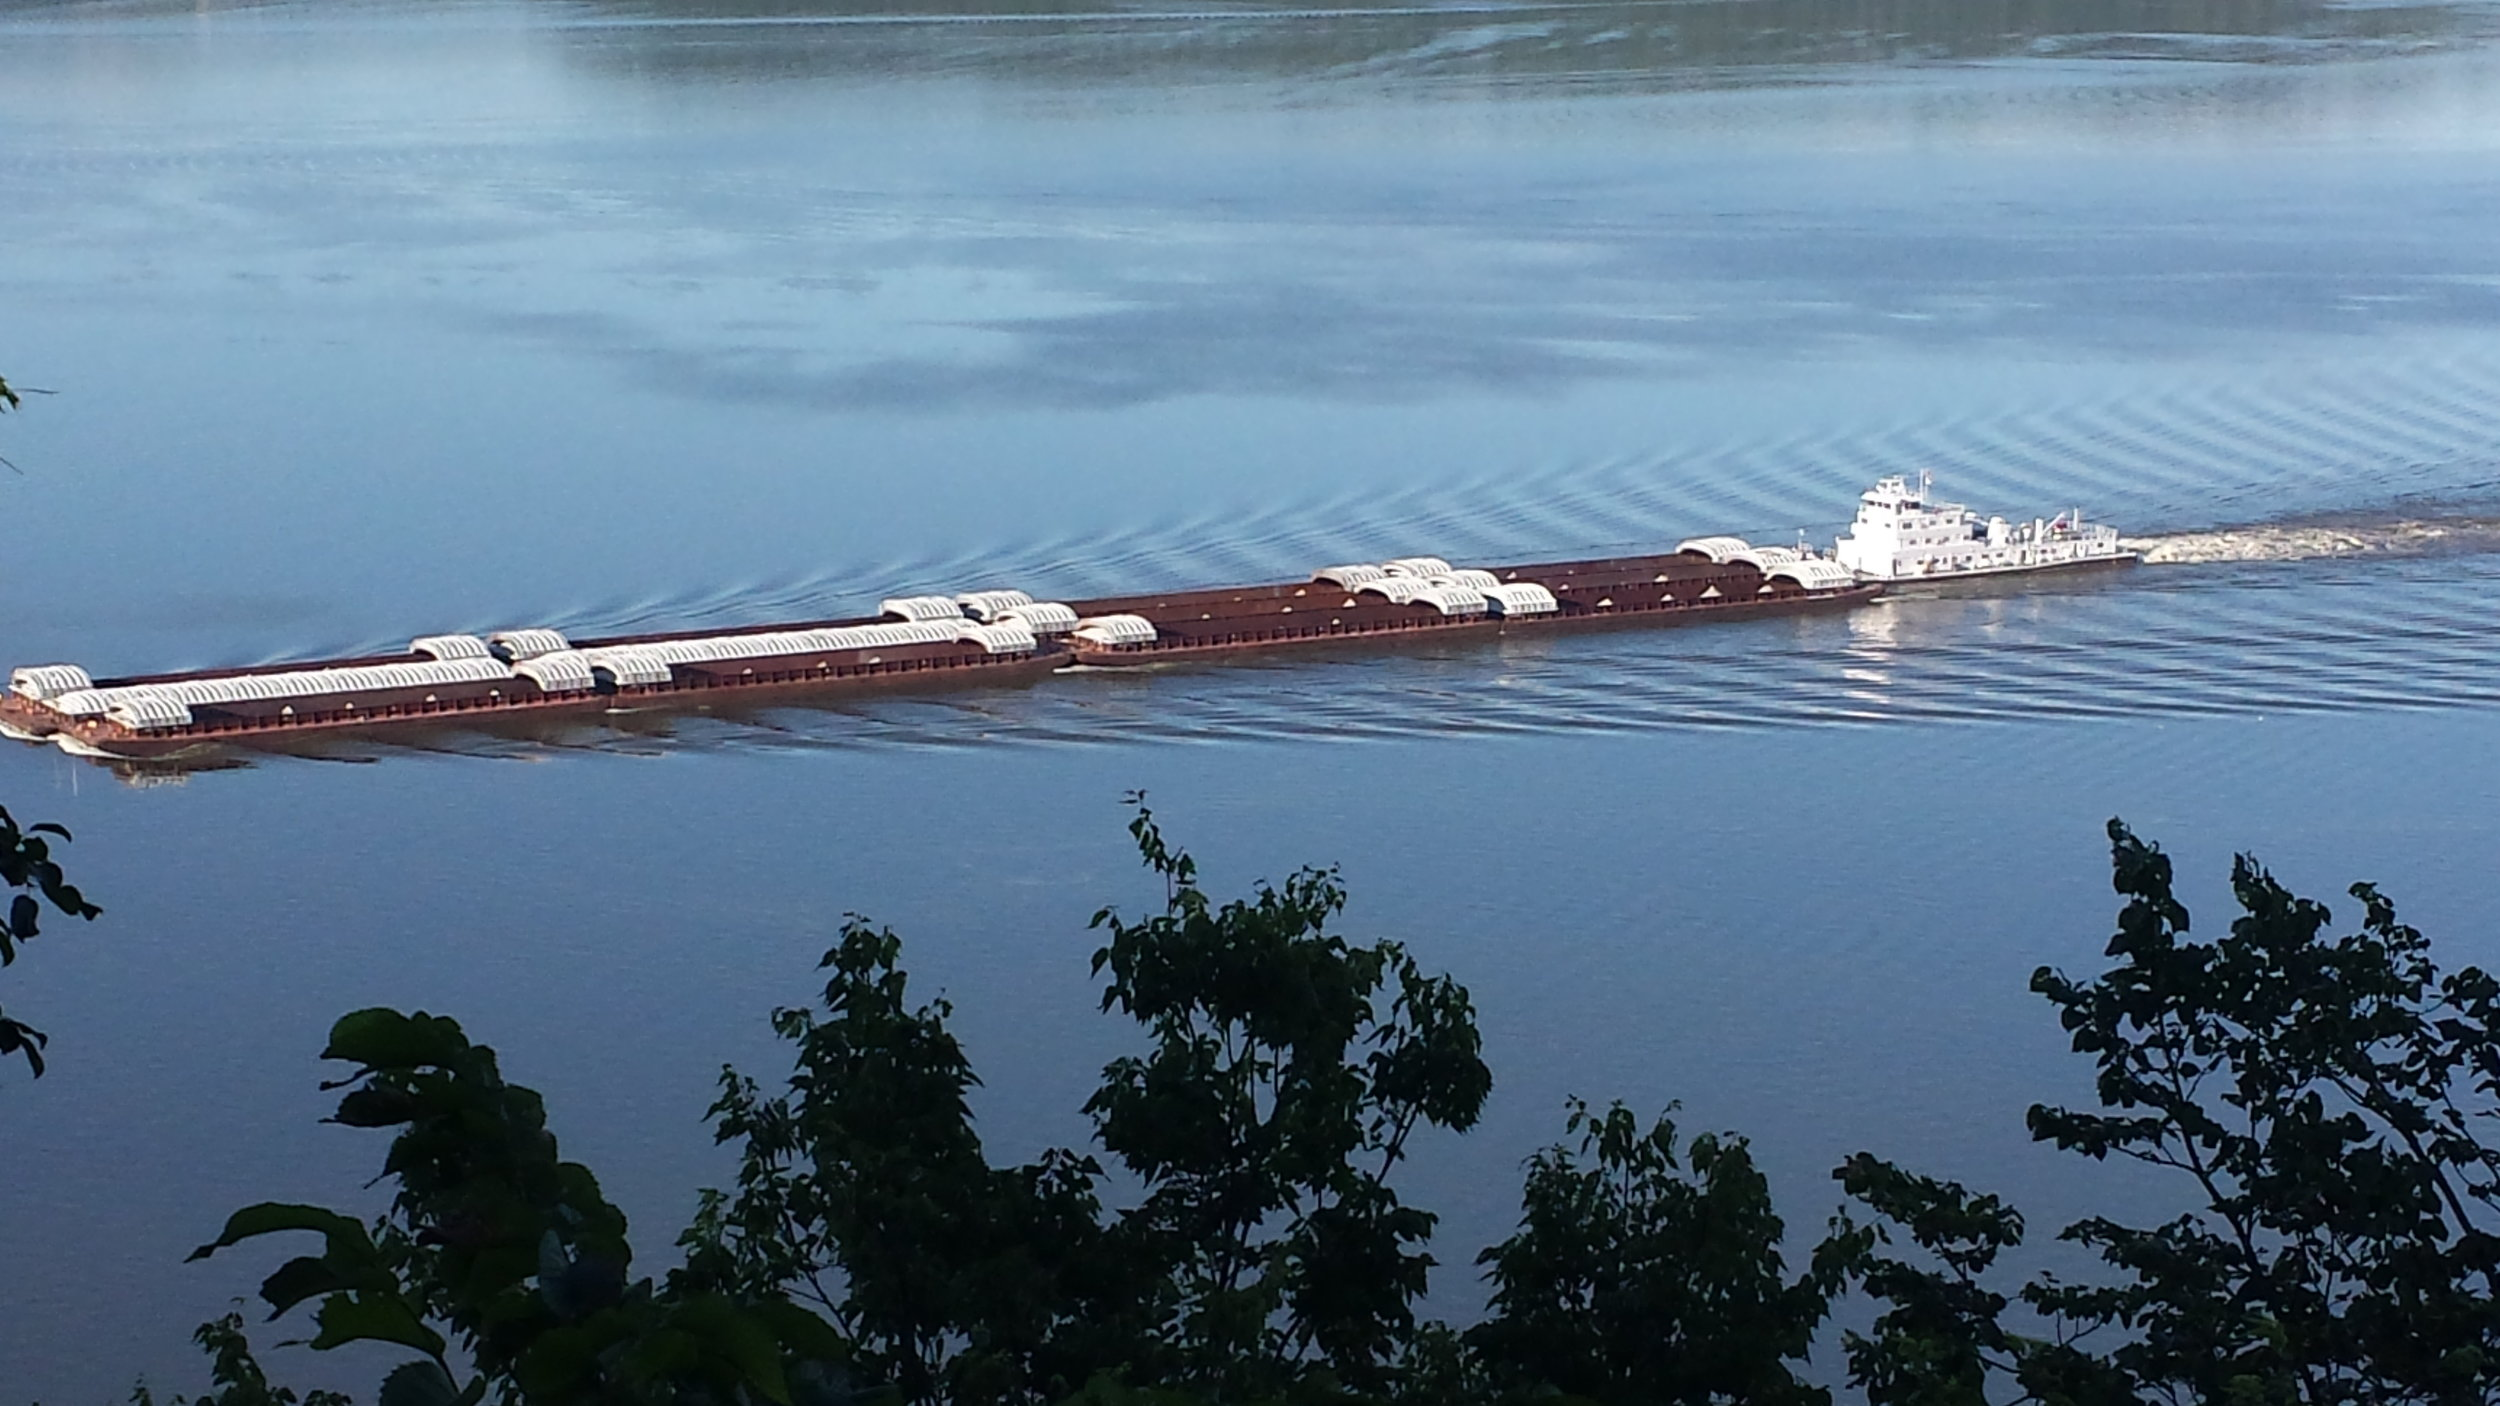 Barge on Lake Pepin, Pool 4 - Photo by Becky Schultz